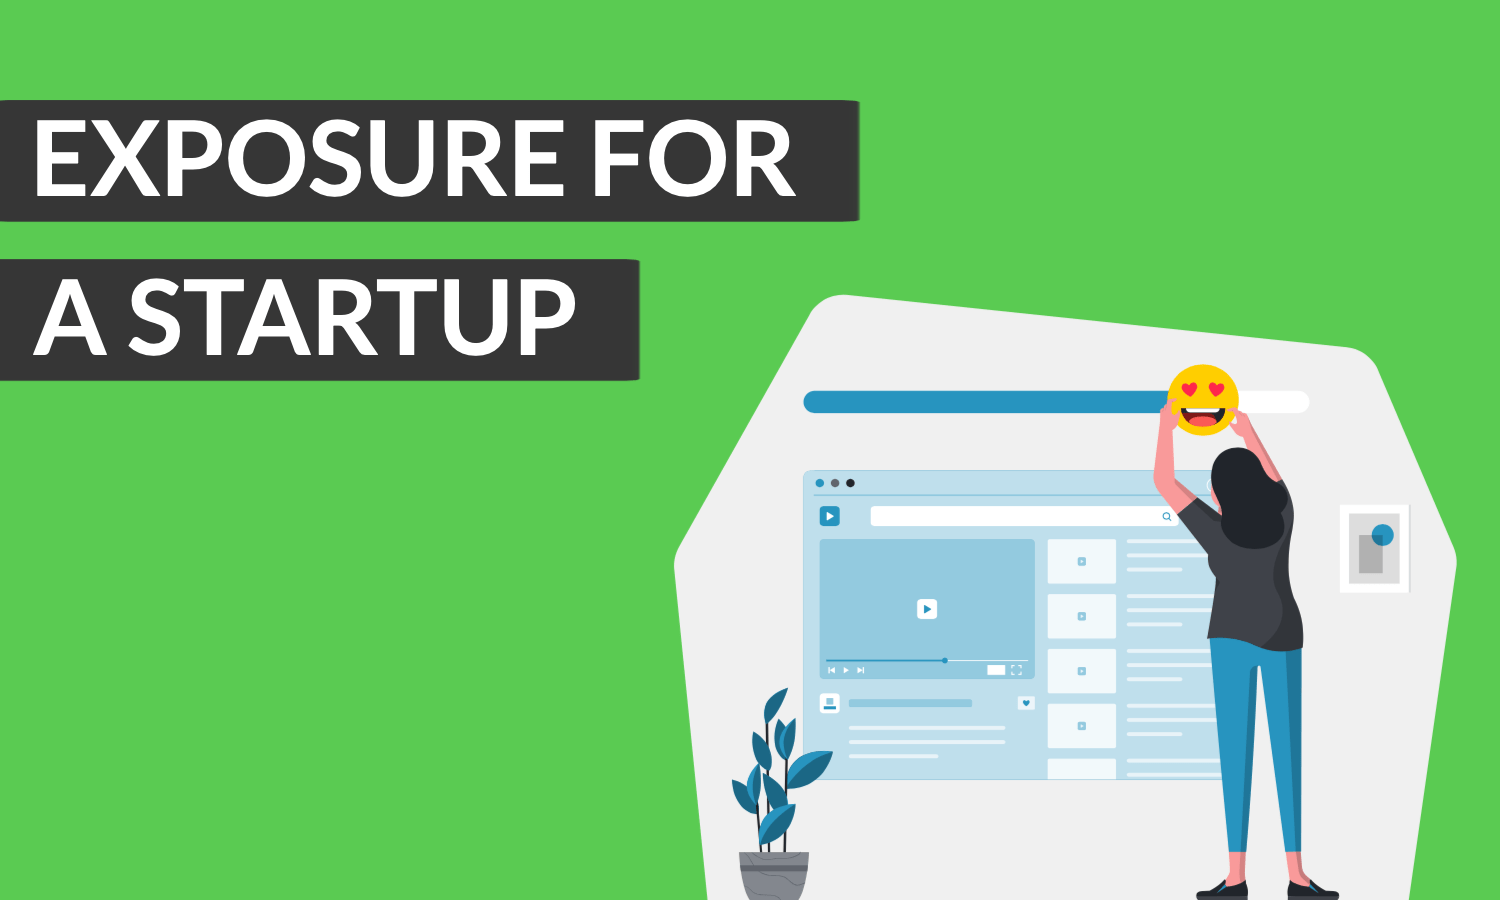 Exposure for a start up